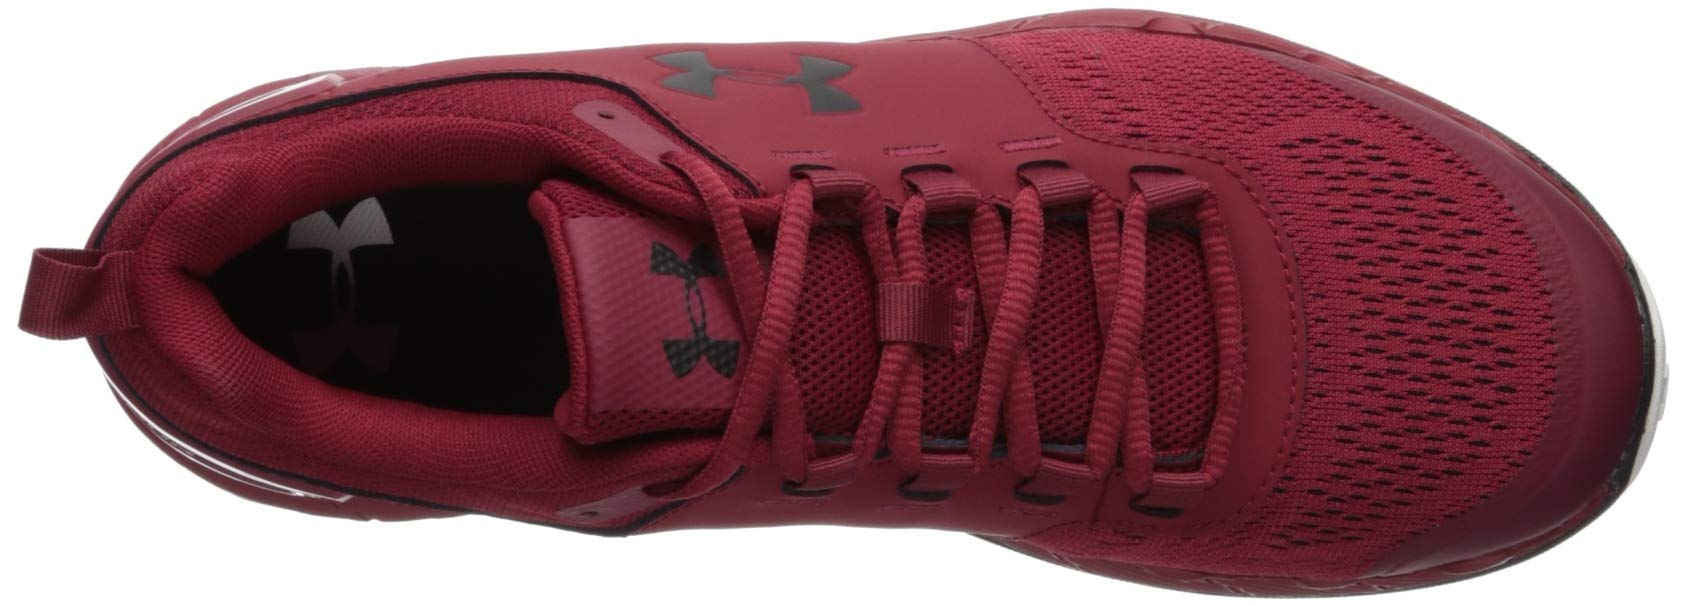 Under Armour Men's Commit TR EX Sneaker, Aruba Red (600)/Black, 7 M US by Under Armour (Image #6)